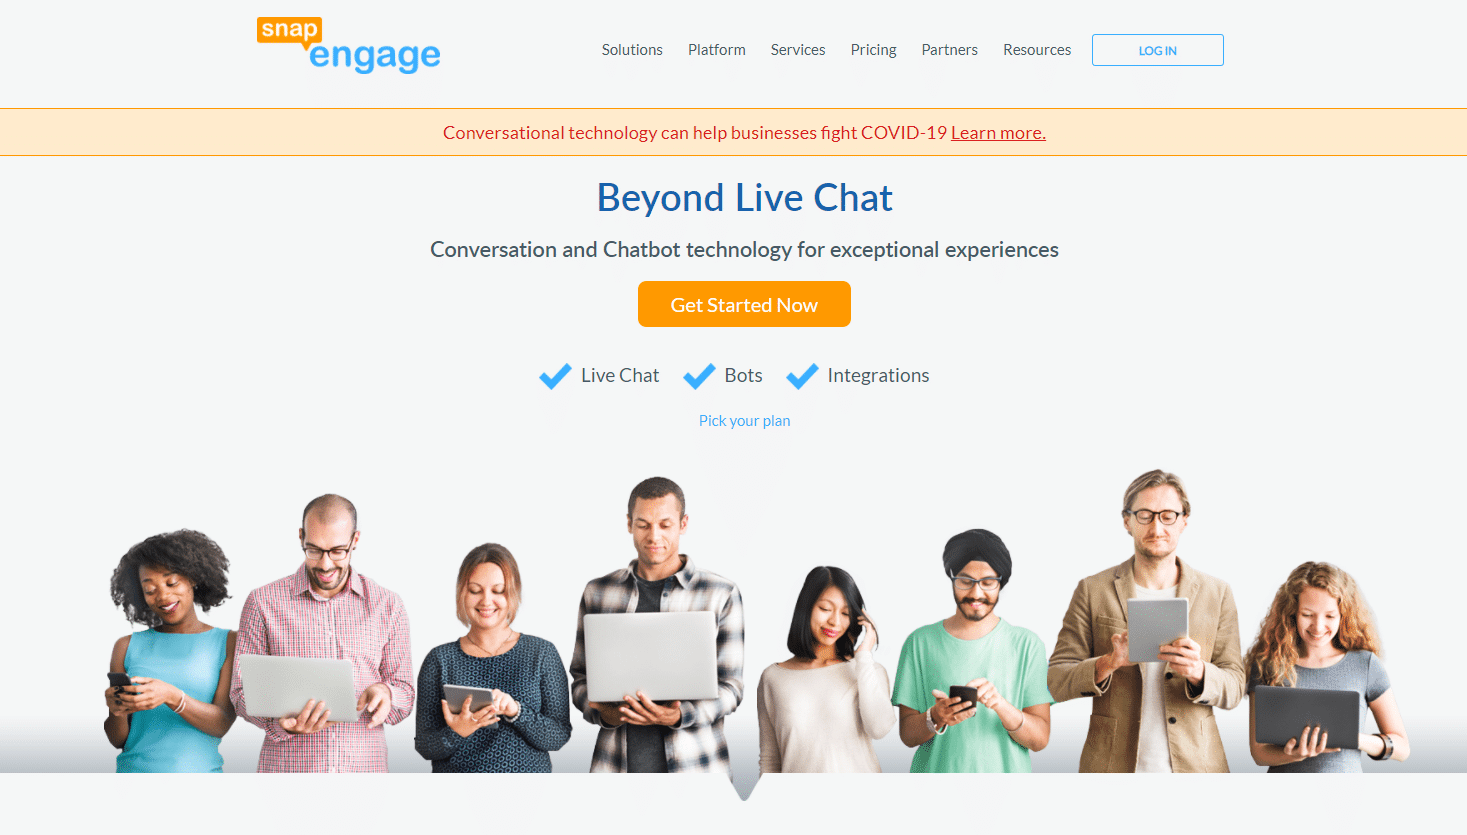 snapengage-live-chat-service